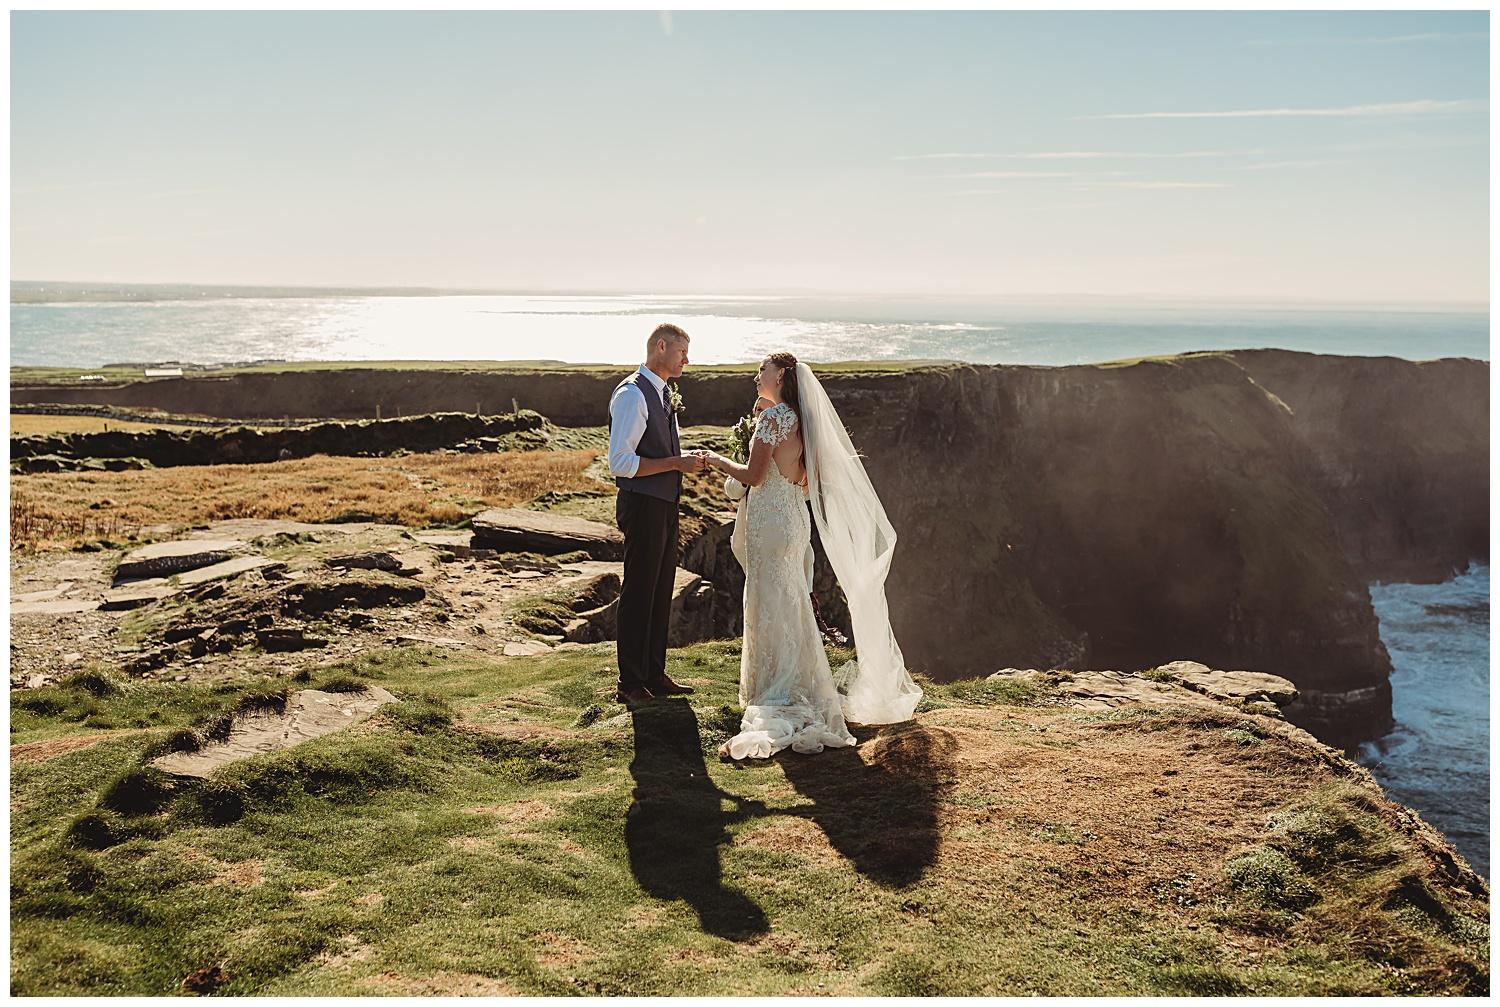 The Cliffs of Moher Destination Wedding Liscannor, County Clare, Ireland_1230.jpg